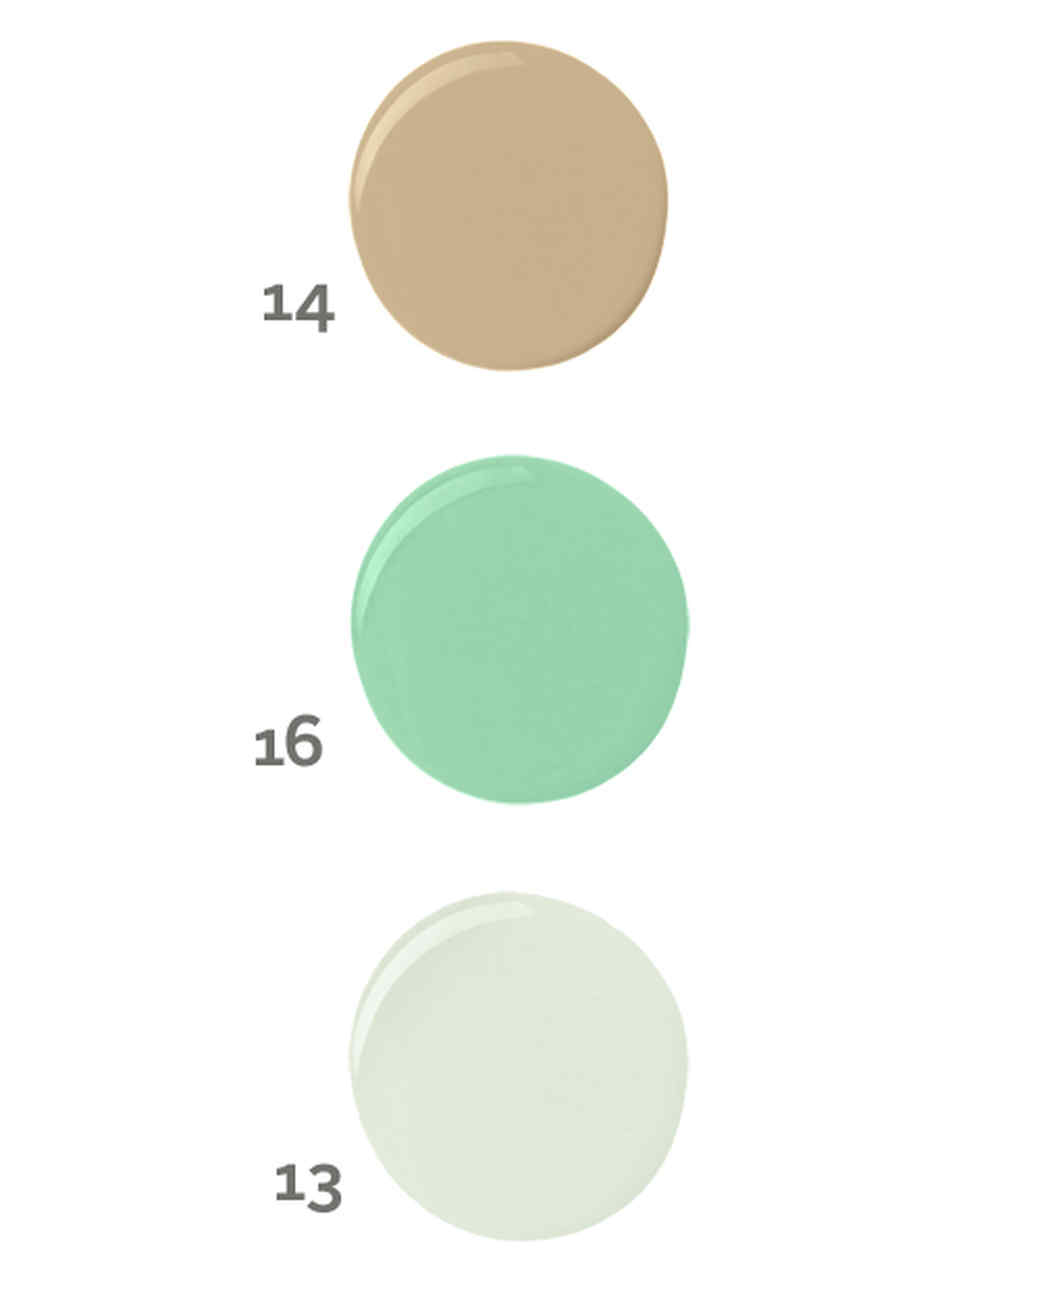 mld104784_0510_paint_swatches4.jpg